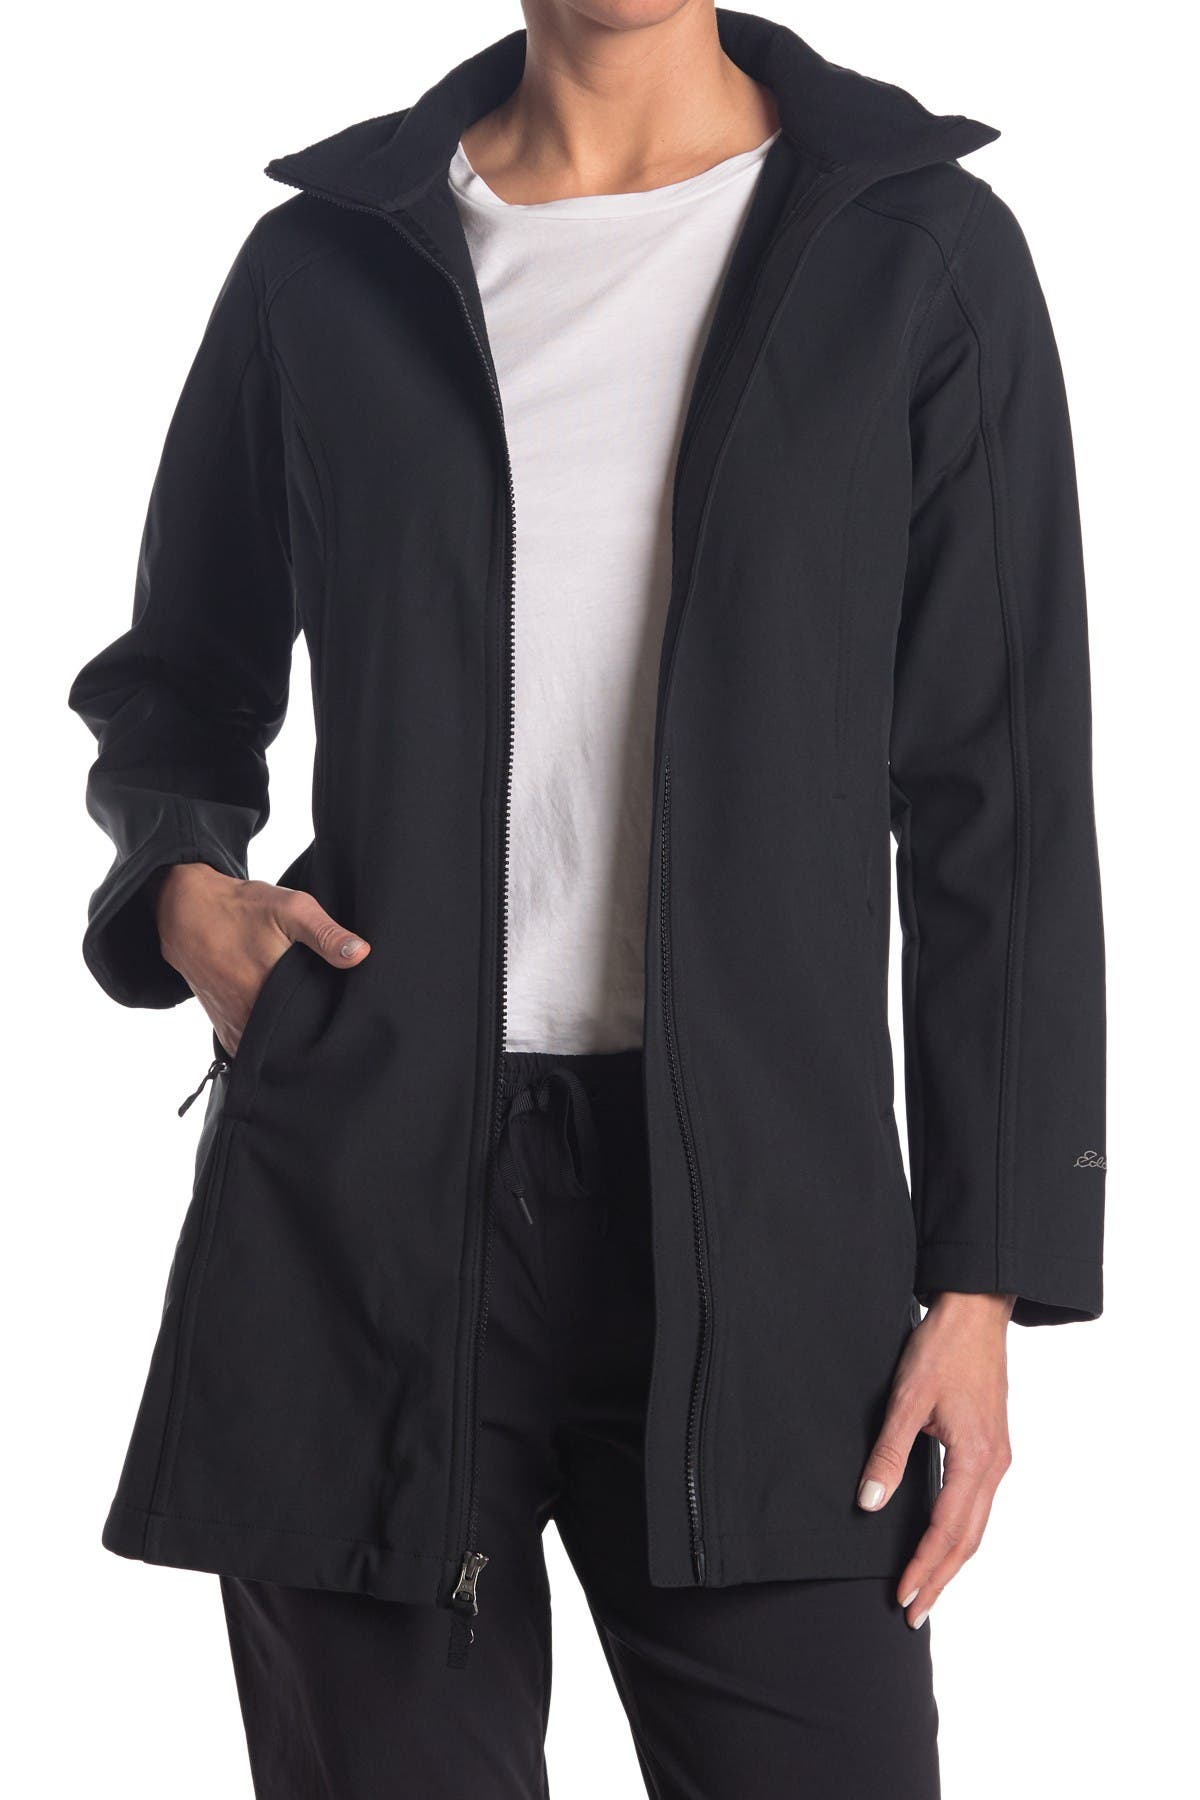 Image of Eddie Bauer Windfoil Elite Trench Coat